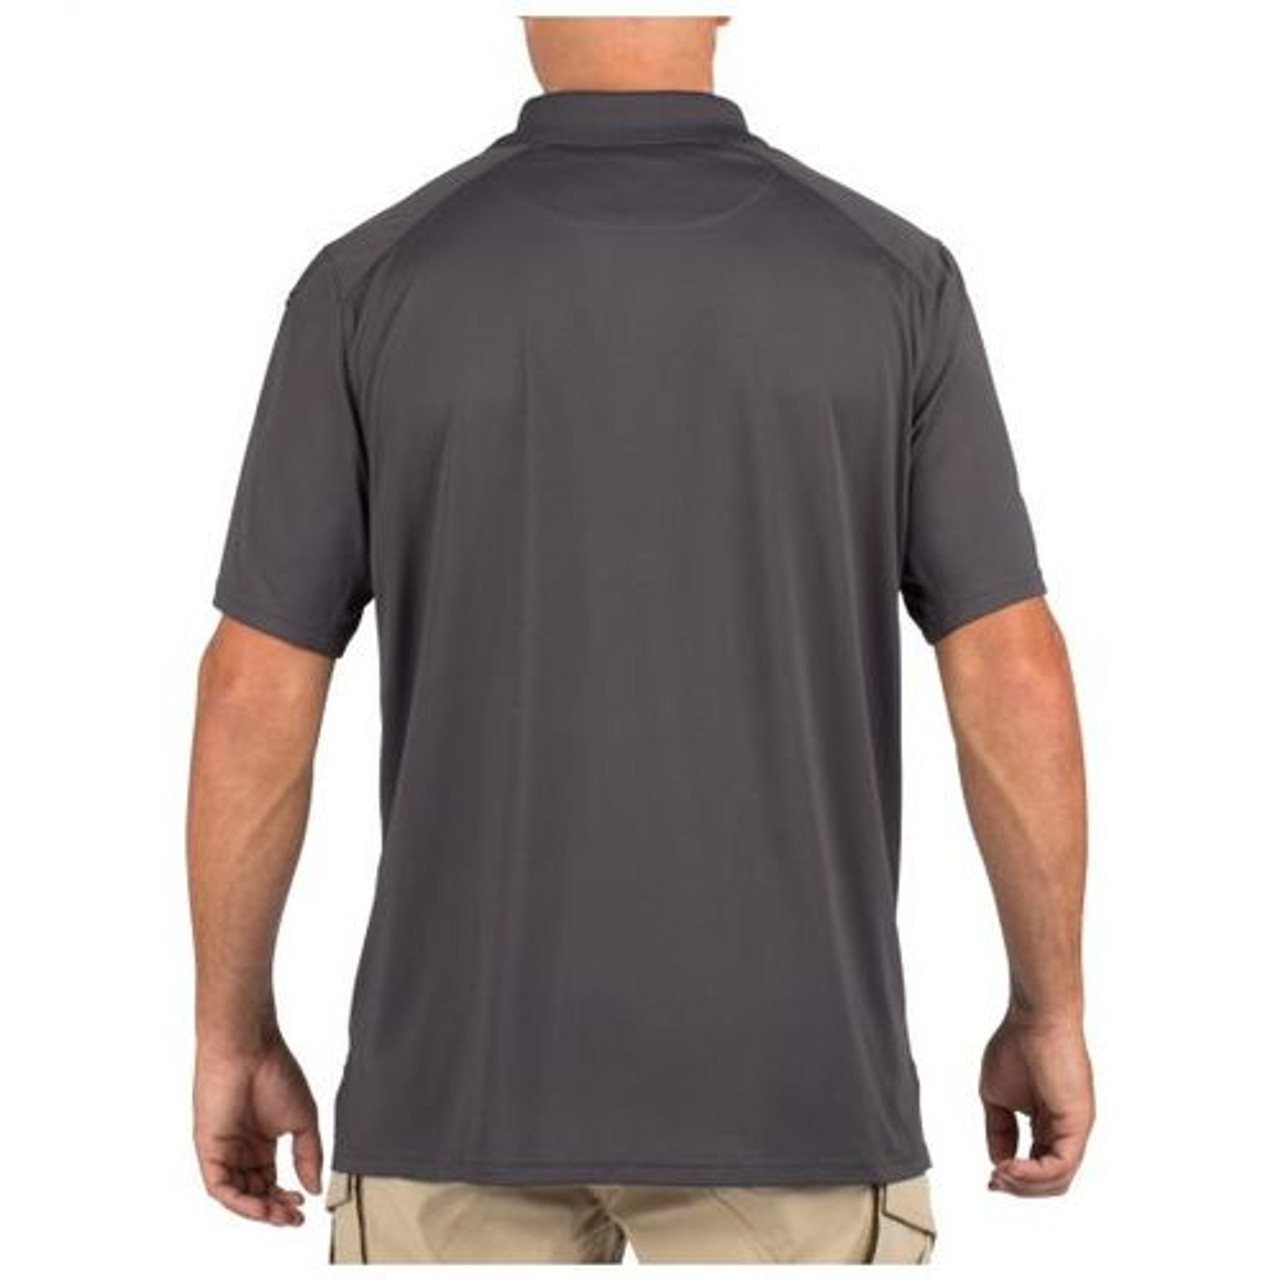 5.11 Tactical Men's Helios Short Sleeve Polo Shirt, Shoulder and Sternum Mic Loops, for Casual or Uniform Use, available in Heather Grey, Charcoal, Black, Silver Tan, Range Red, Academy Blue, and Dark Navy 41192